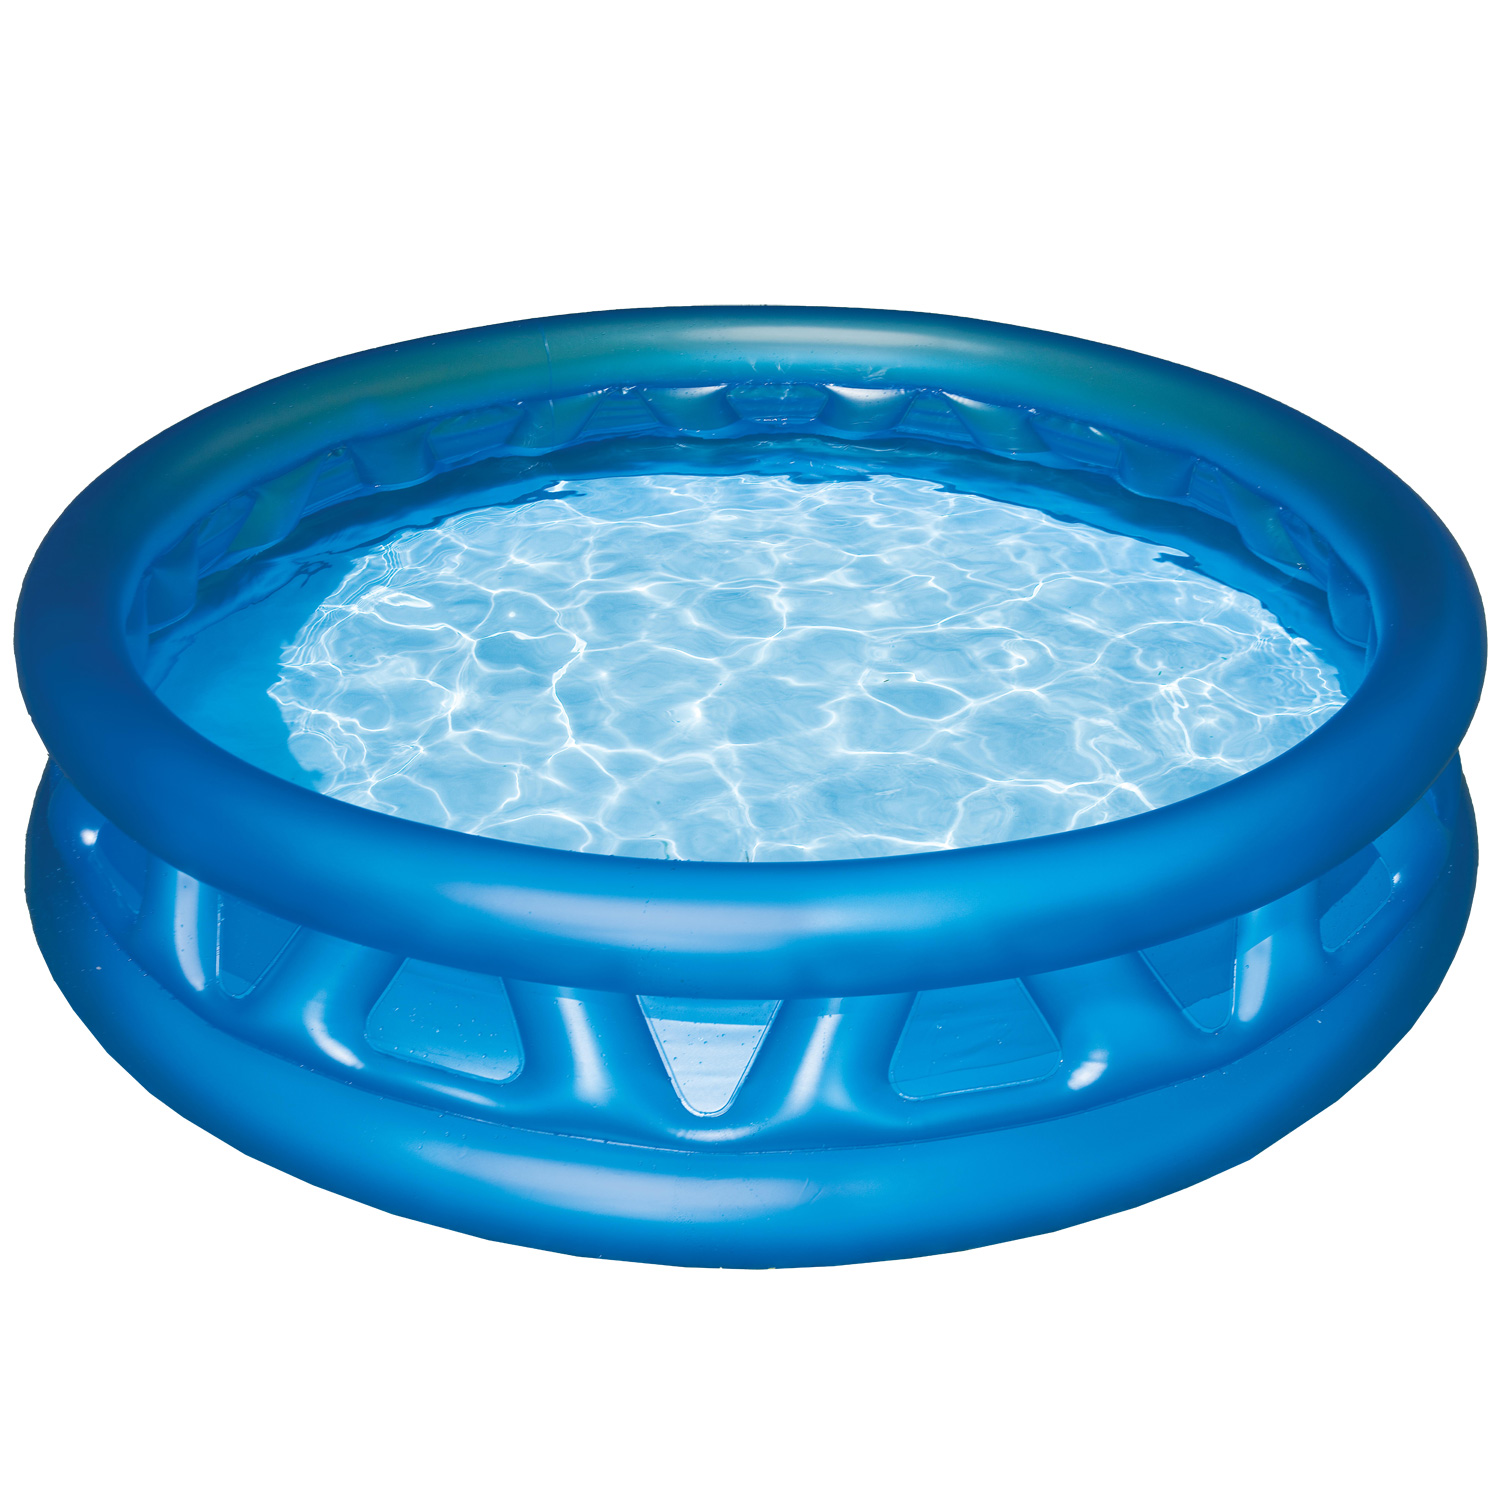 Piscine gonflable intex soft side pool piscines pour enfants for Piscine gonflable rectangulaire